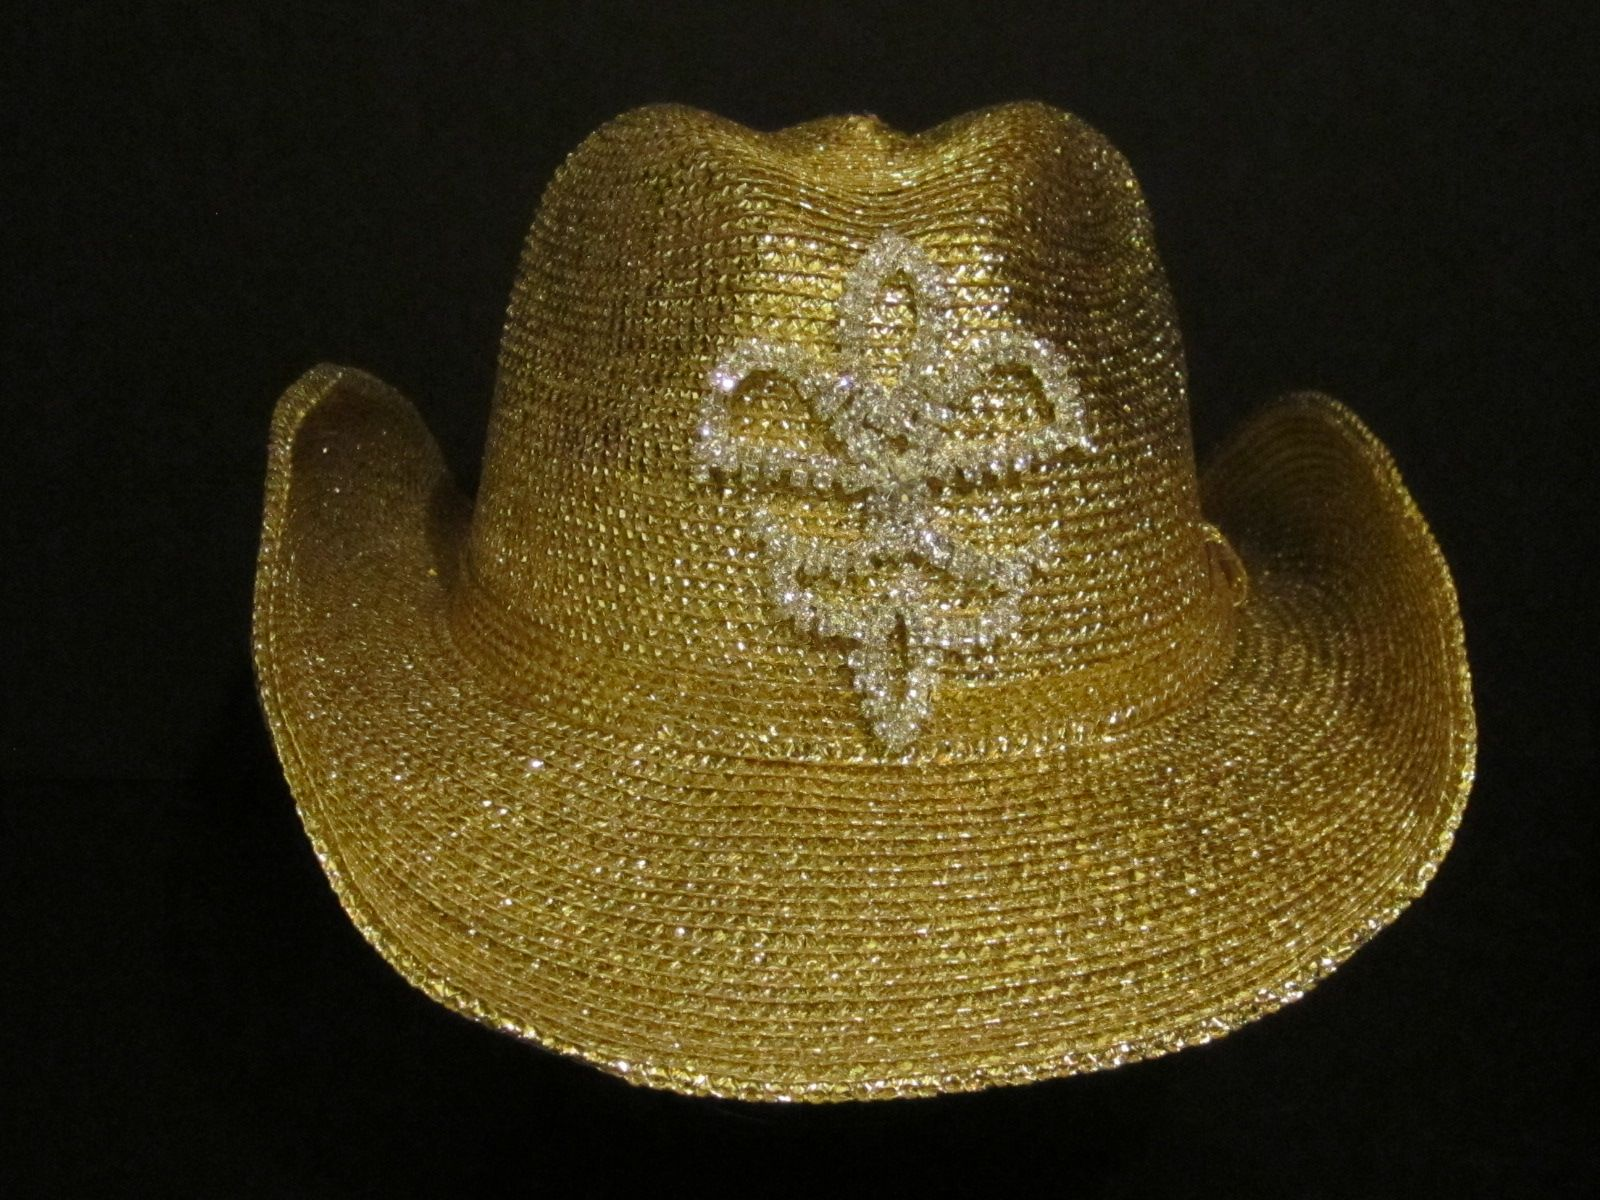 Gold cowgirl hat with a hand sewn rhinestone Fleur De Lis -  65.00 For more  info please contact - Shoot for the Moon Jewelry Designs (850) 230-9983 ... b3edbeef98b